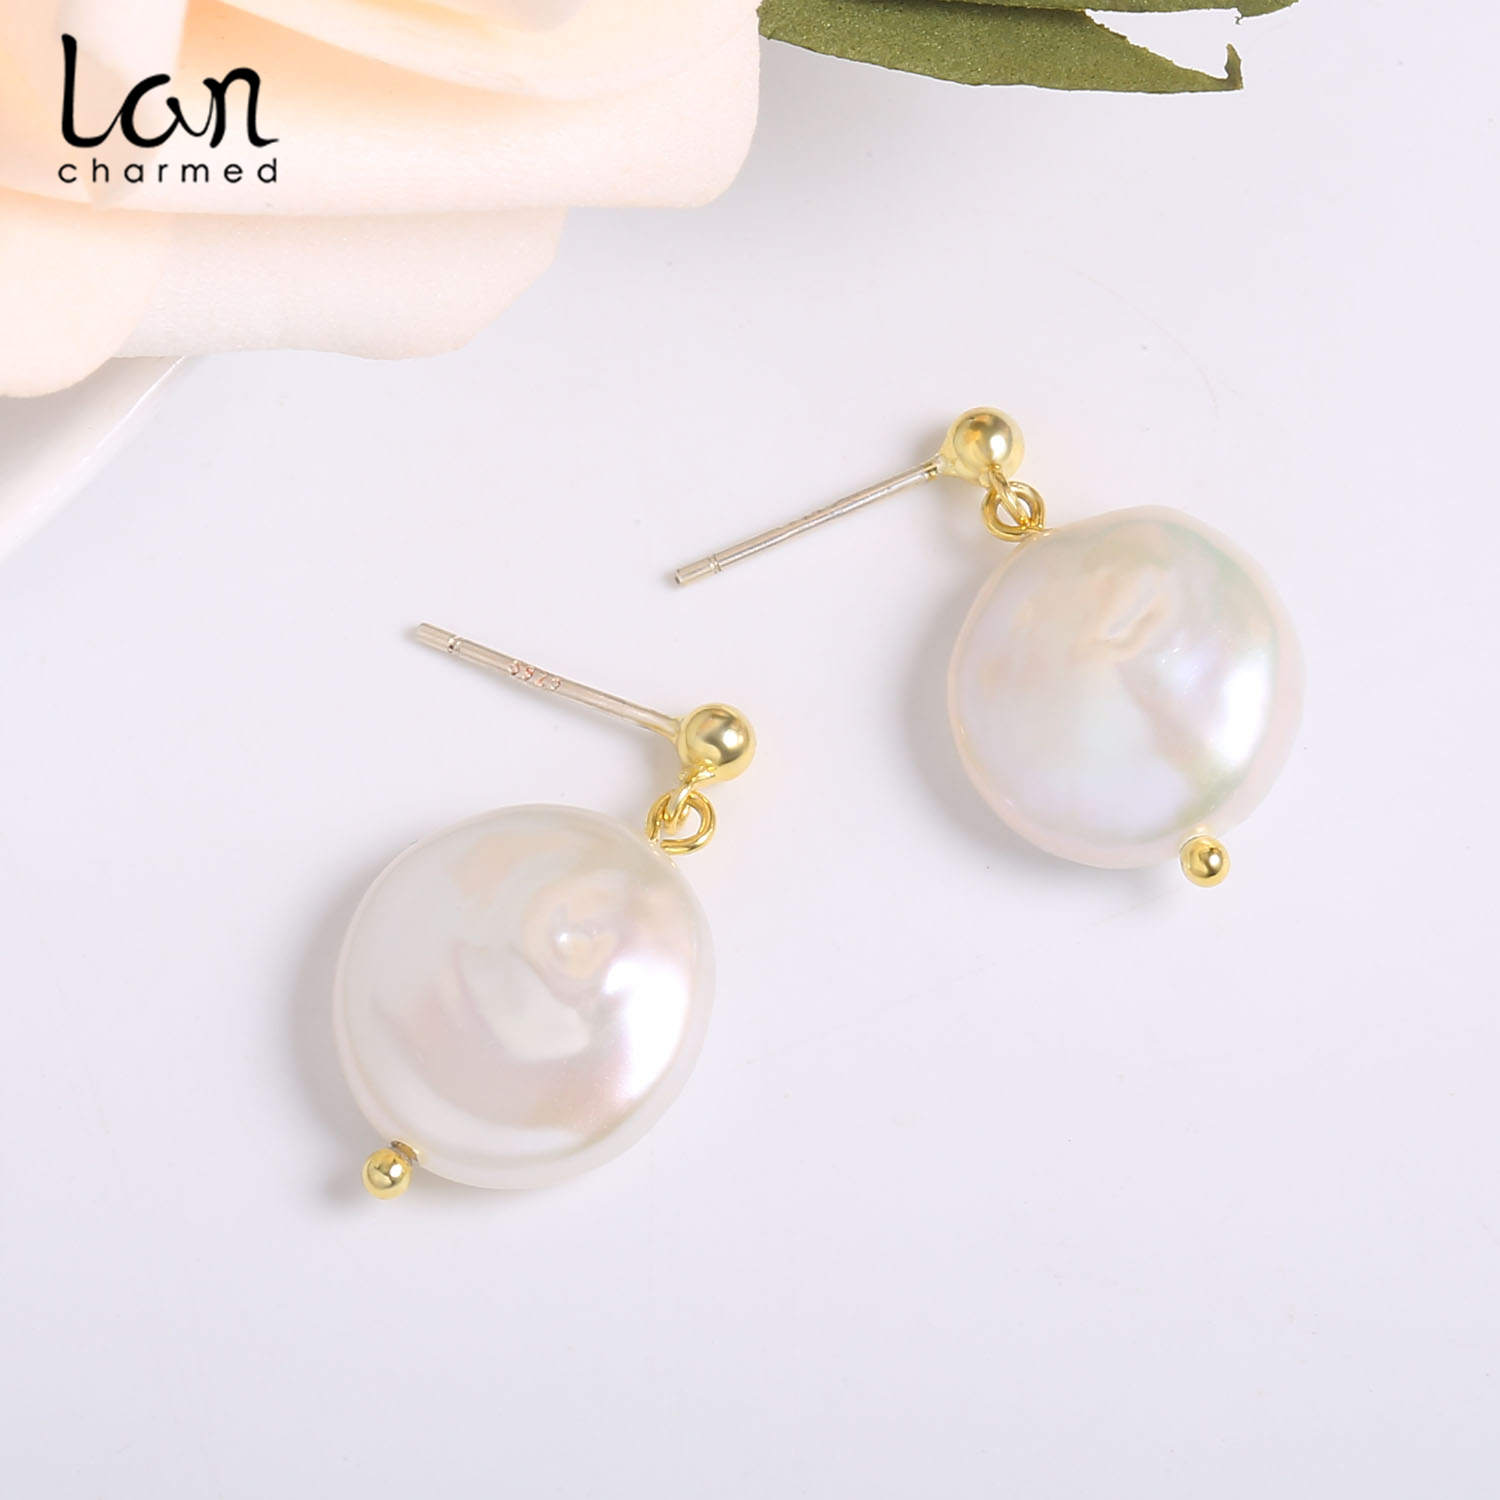 New Sale Gold Plated Sterling Silver Earrings Freshwater Baroque Earrings Peal For Women 39 s Silver Jewelry Earrings Pearl in Earrings from Jewelry amp Accessories